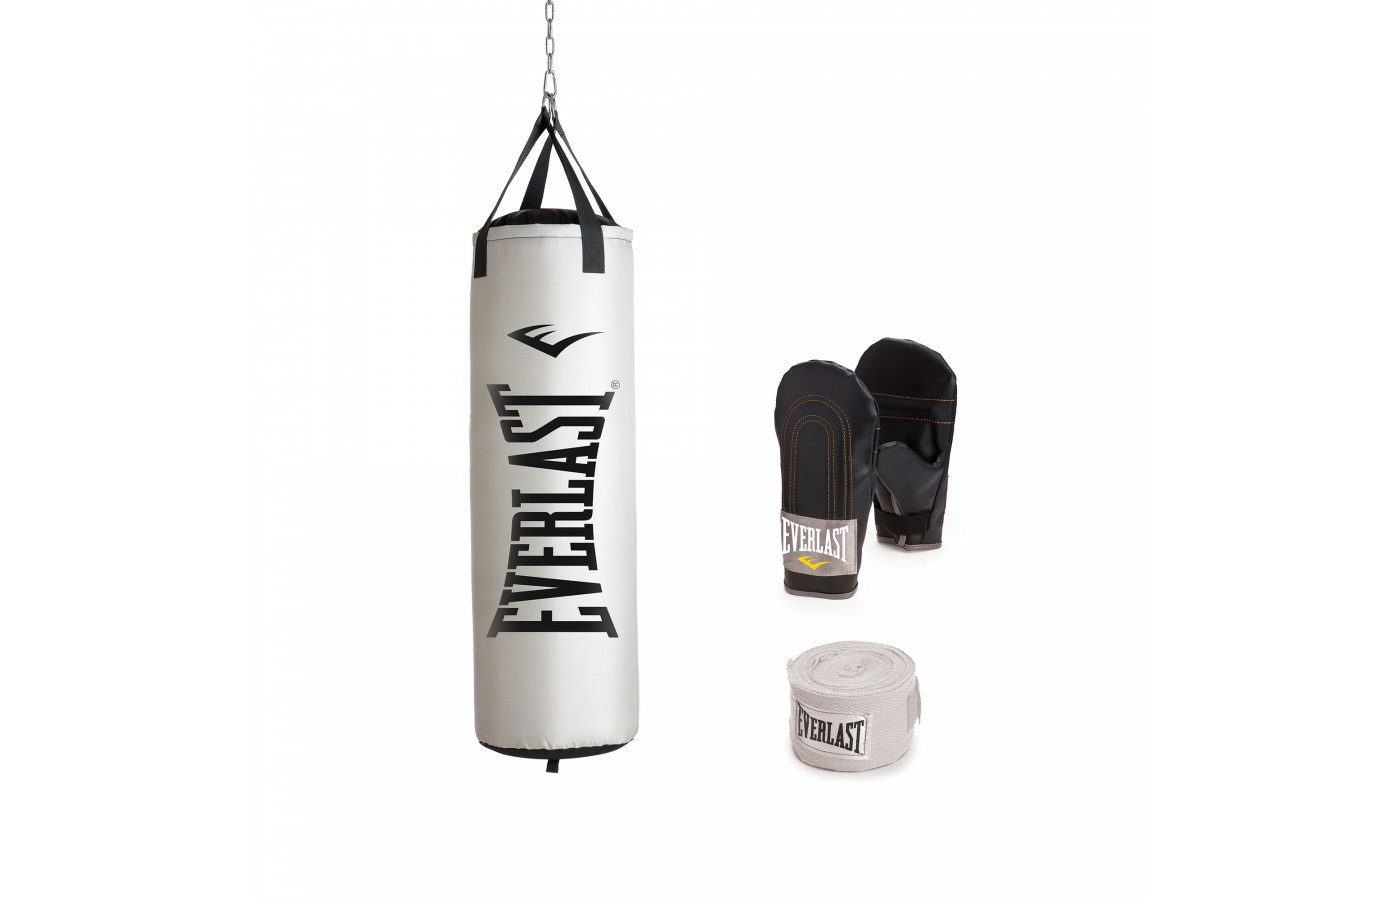 everlast heavy bag kit white